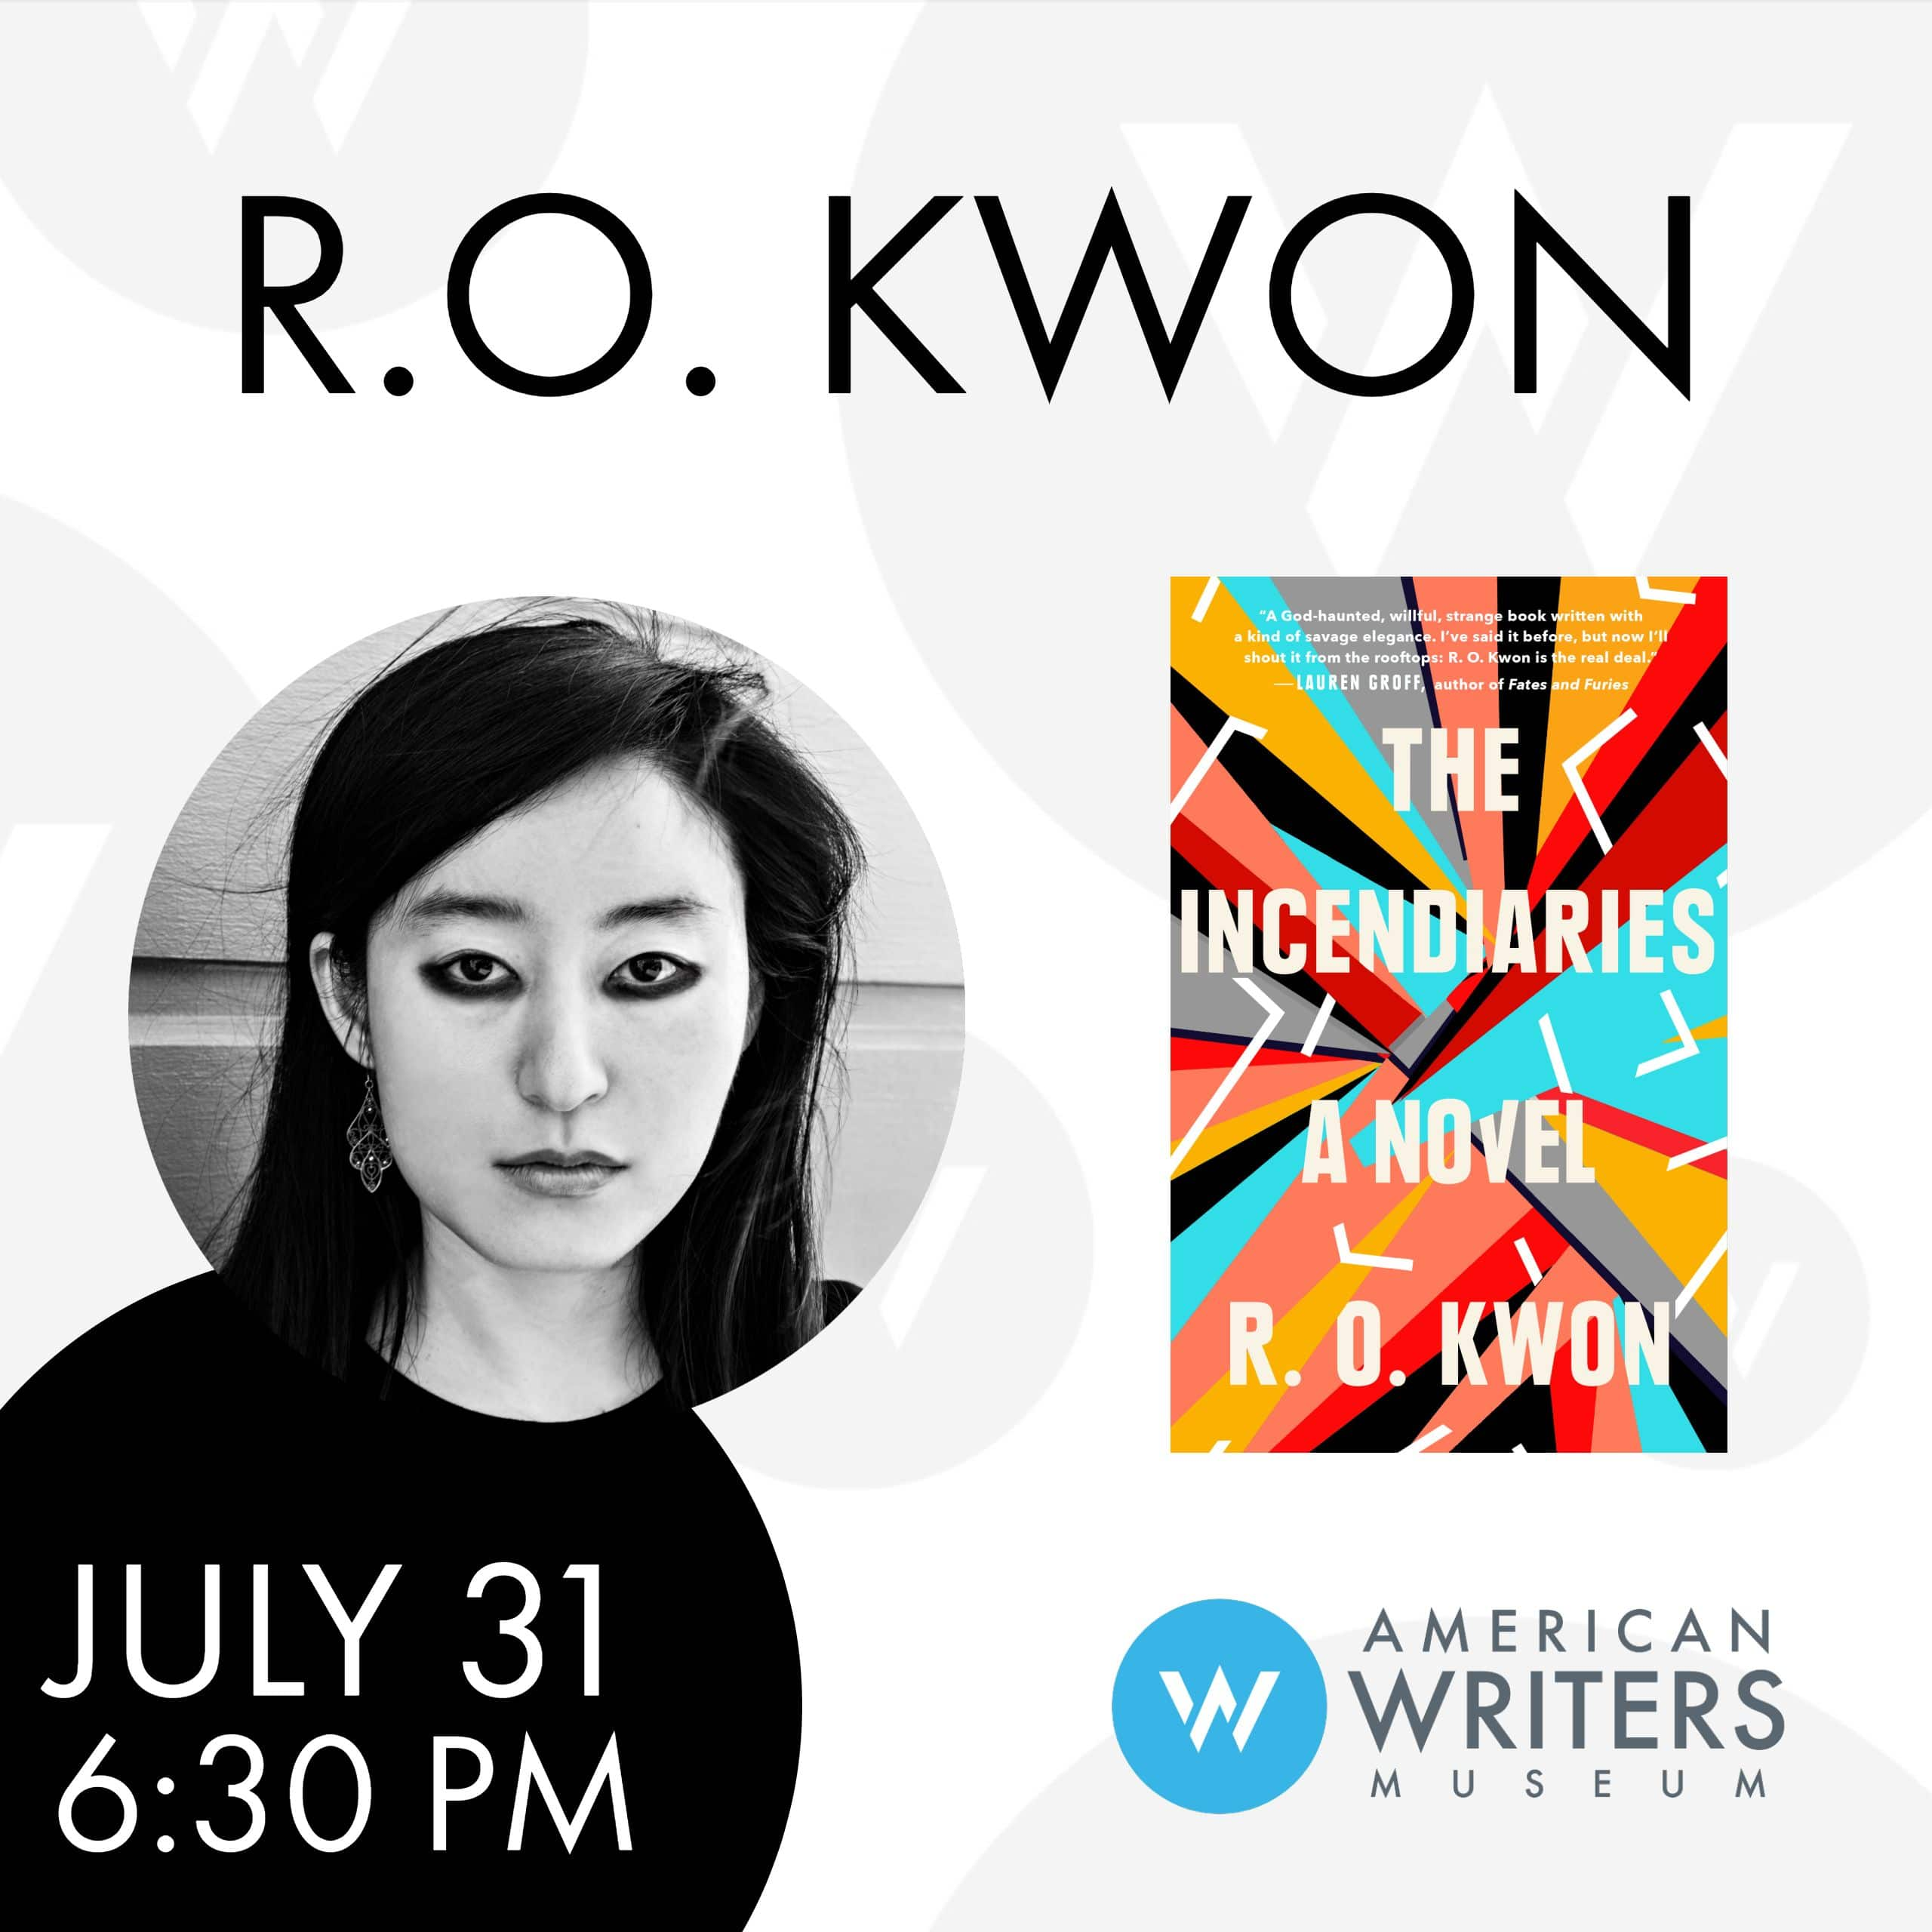 R.O. Kwon at the American Writers Museum on July 31